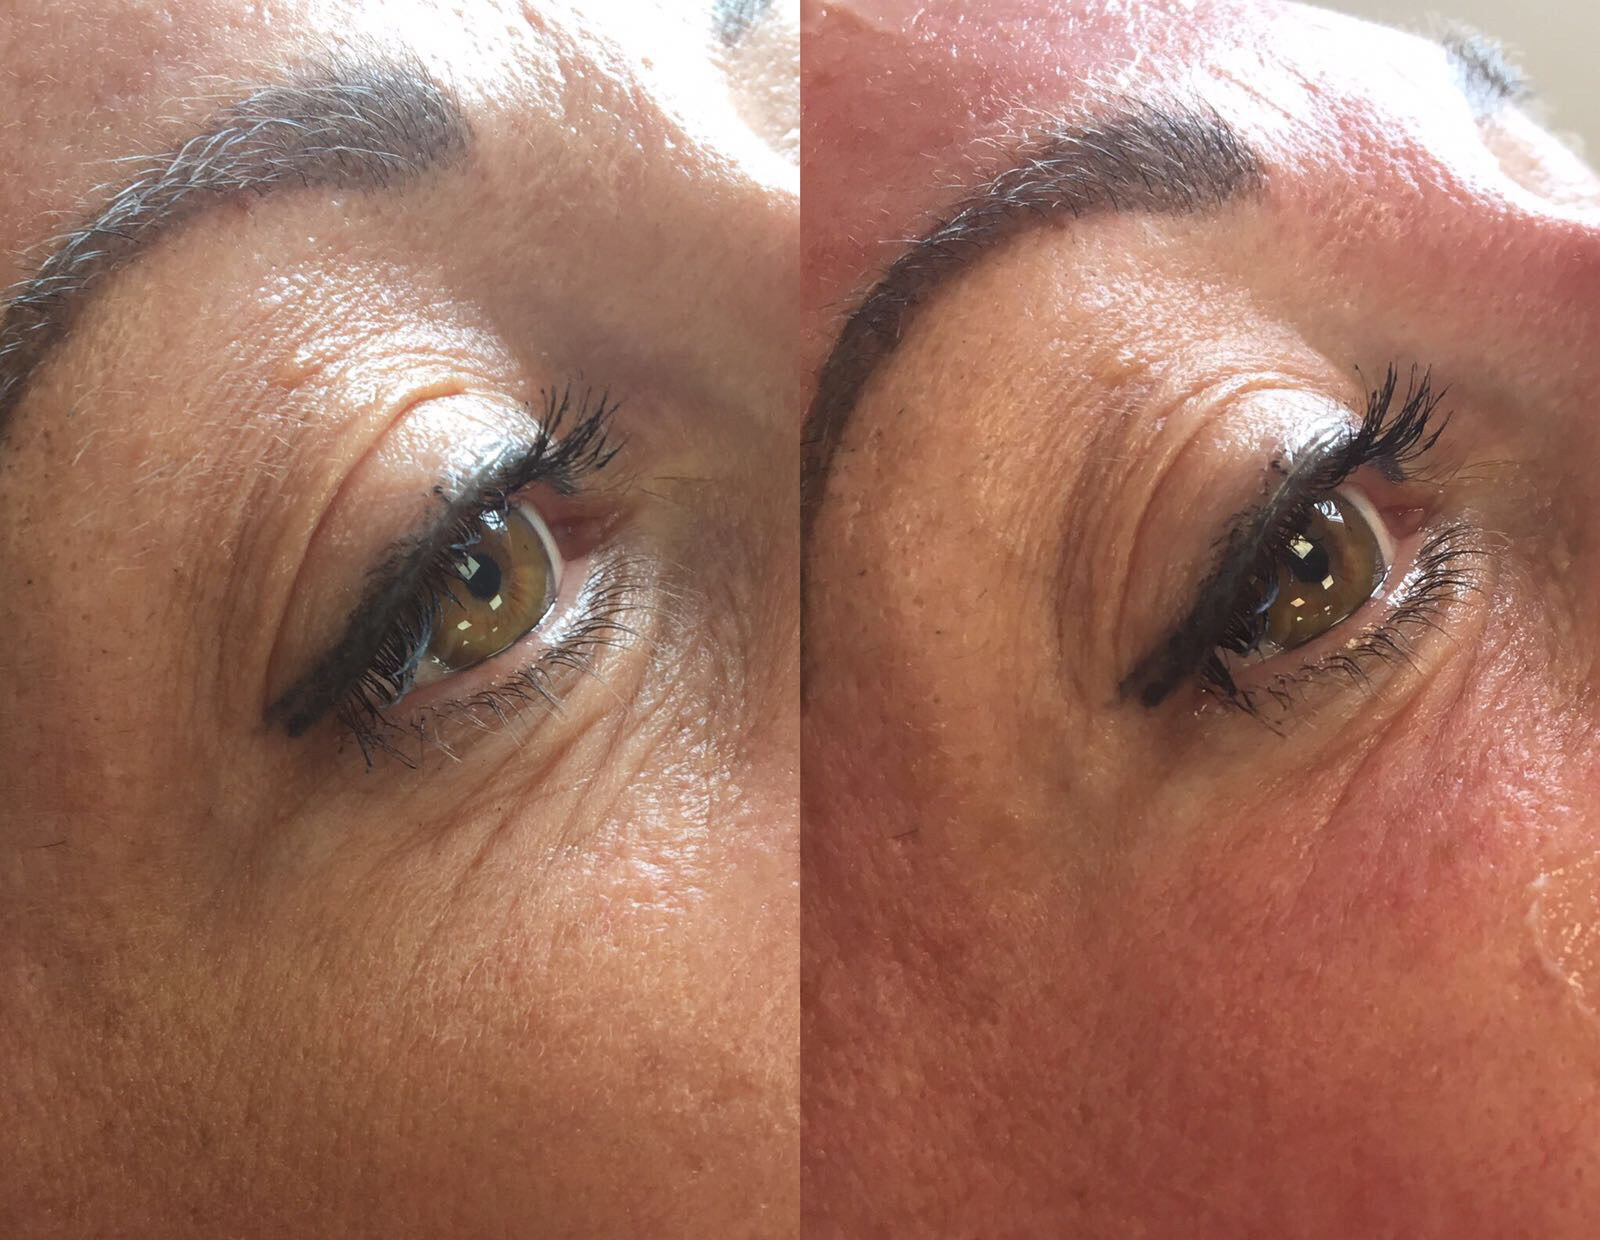 Meso ME Skin Needling Before and After